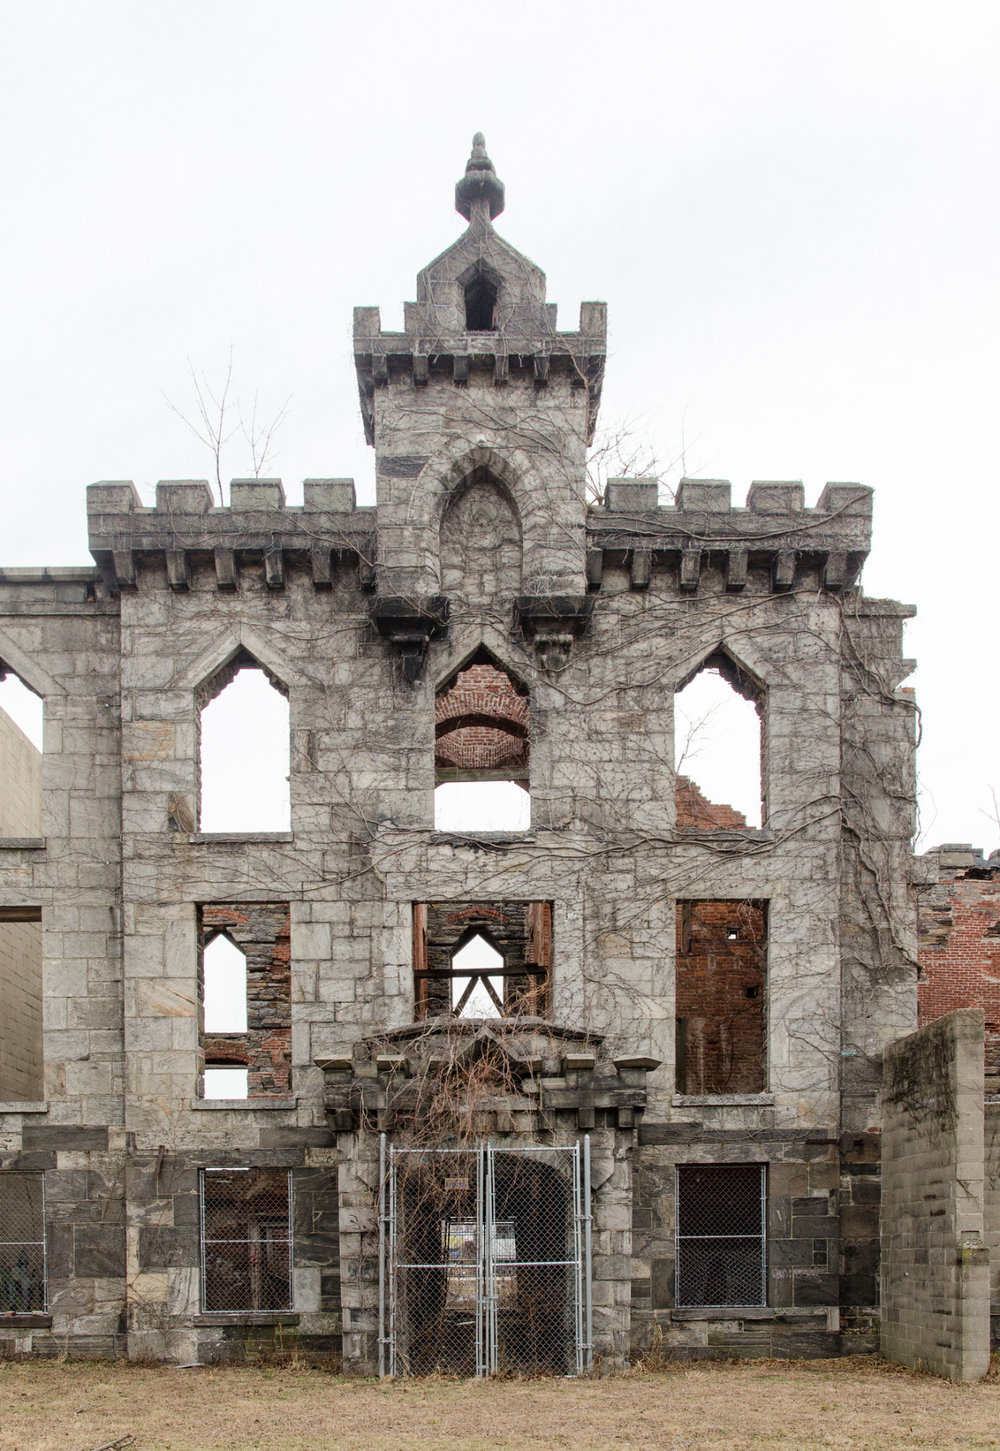 Abandoned Smallpox Hospital from 1856 on Roosevelt Island, NYC.